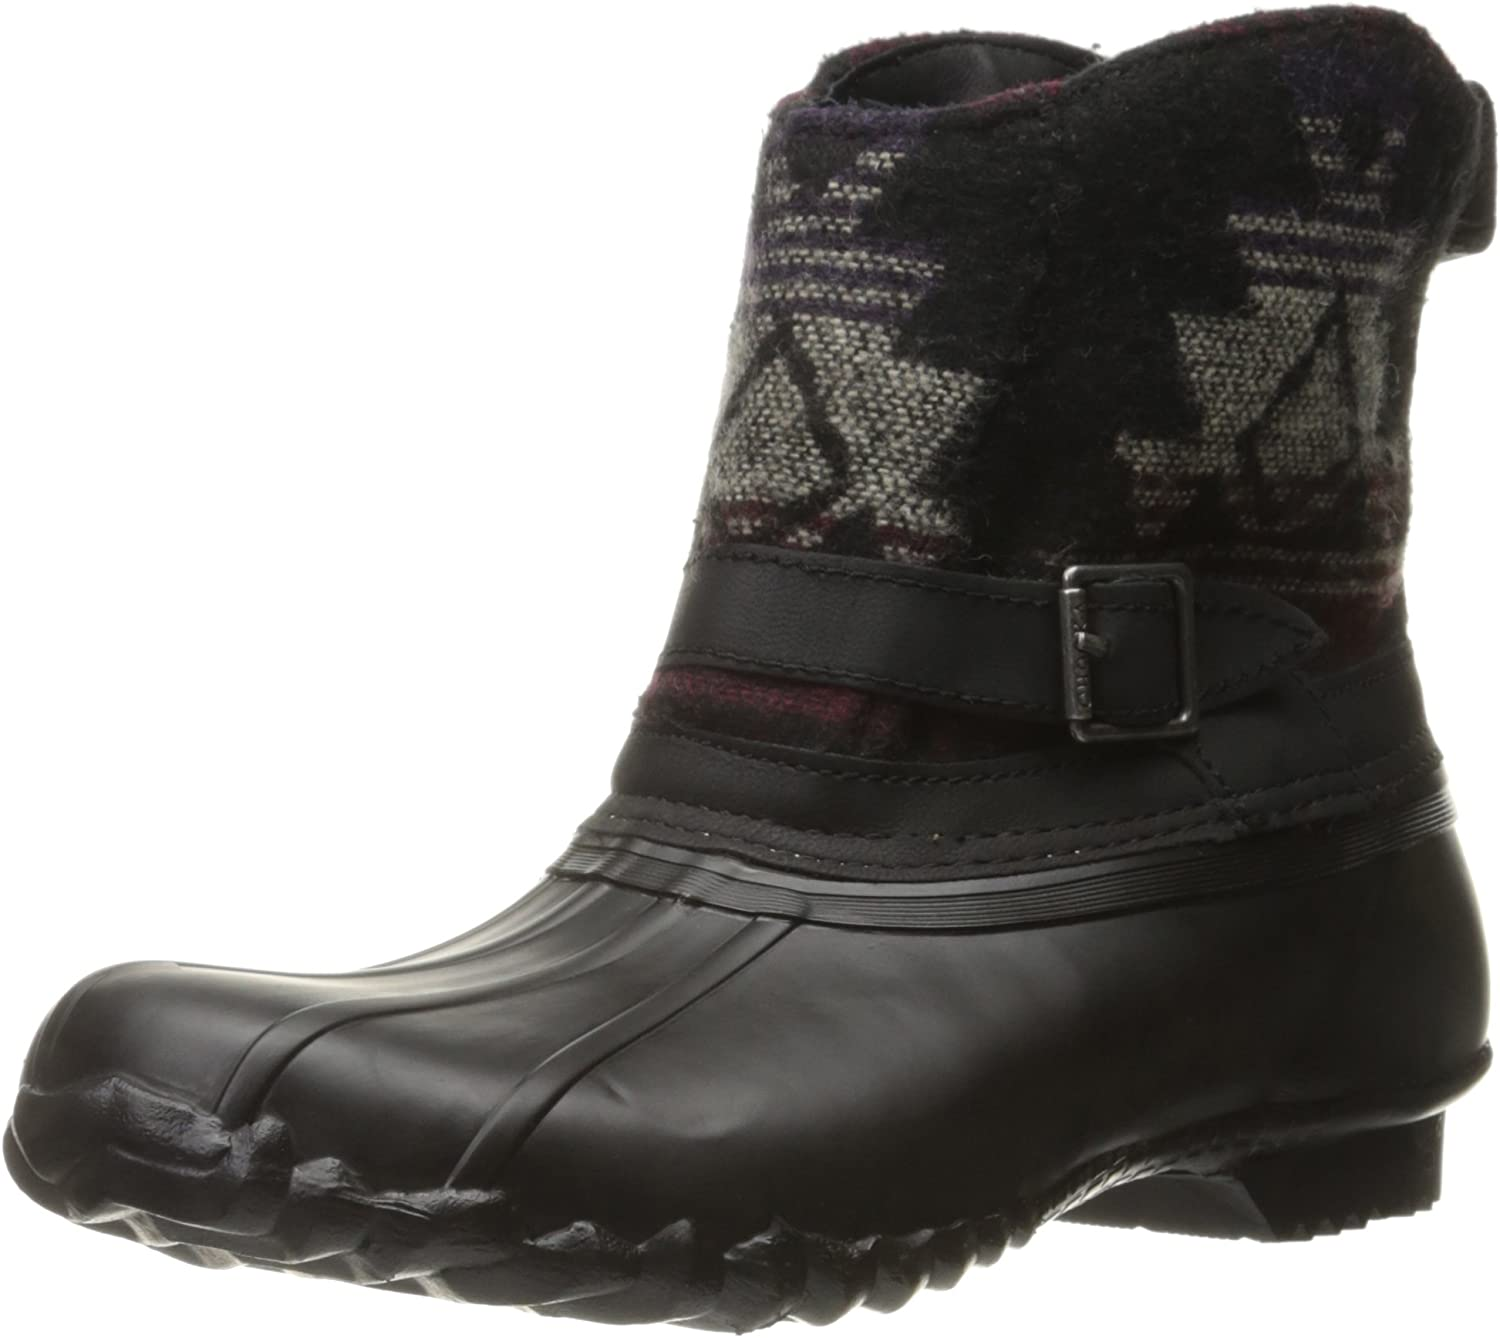 Chooka Womens Fashion Duck Boot Ankle Bootie